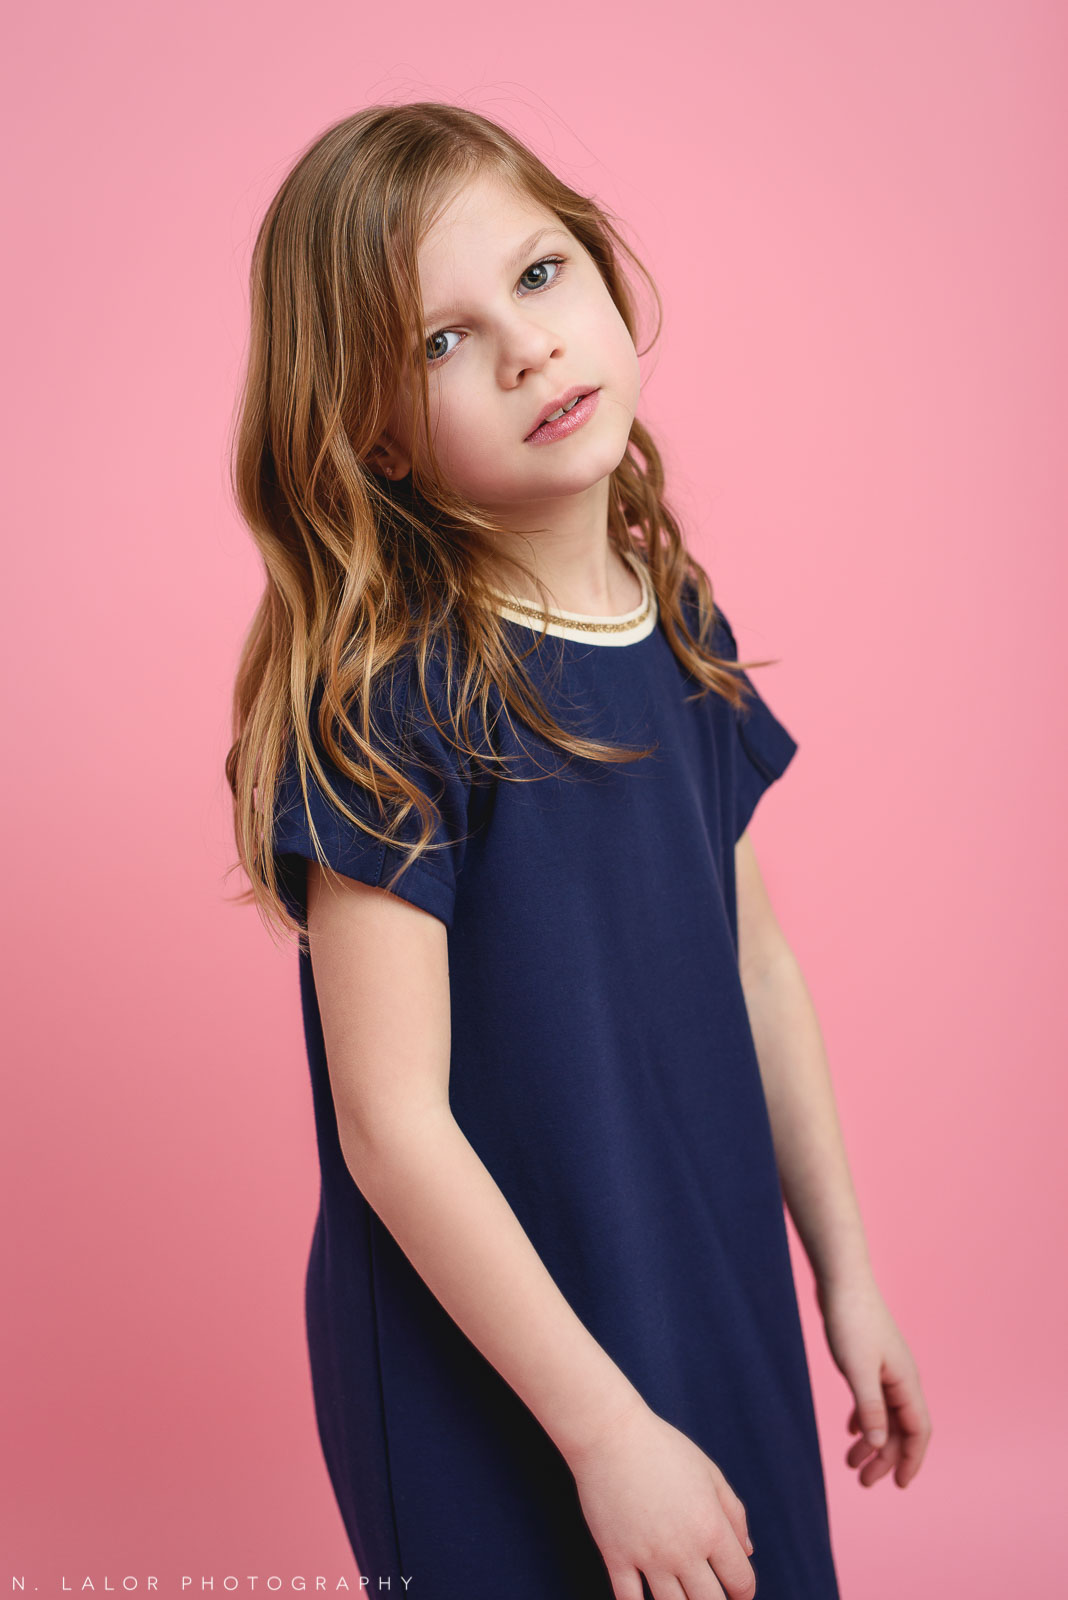 9 year old model. Tween photo session with N. Lalor Photography. Studio located in Greenwich, Connecticut.